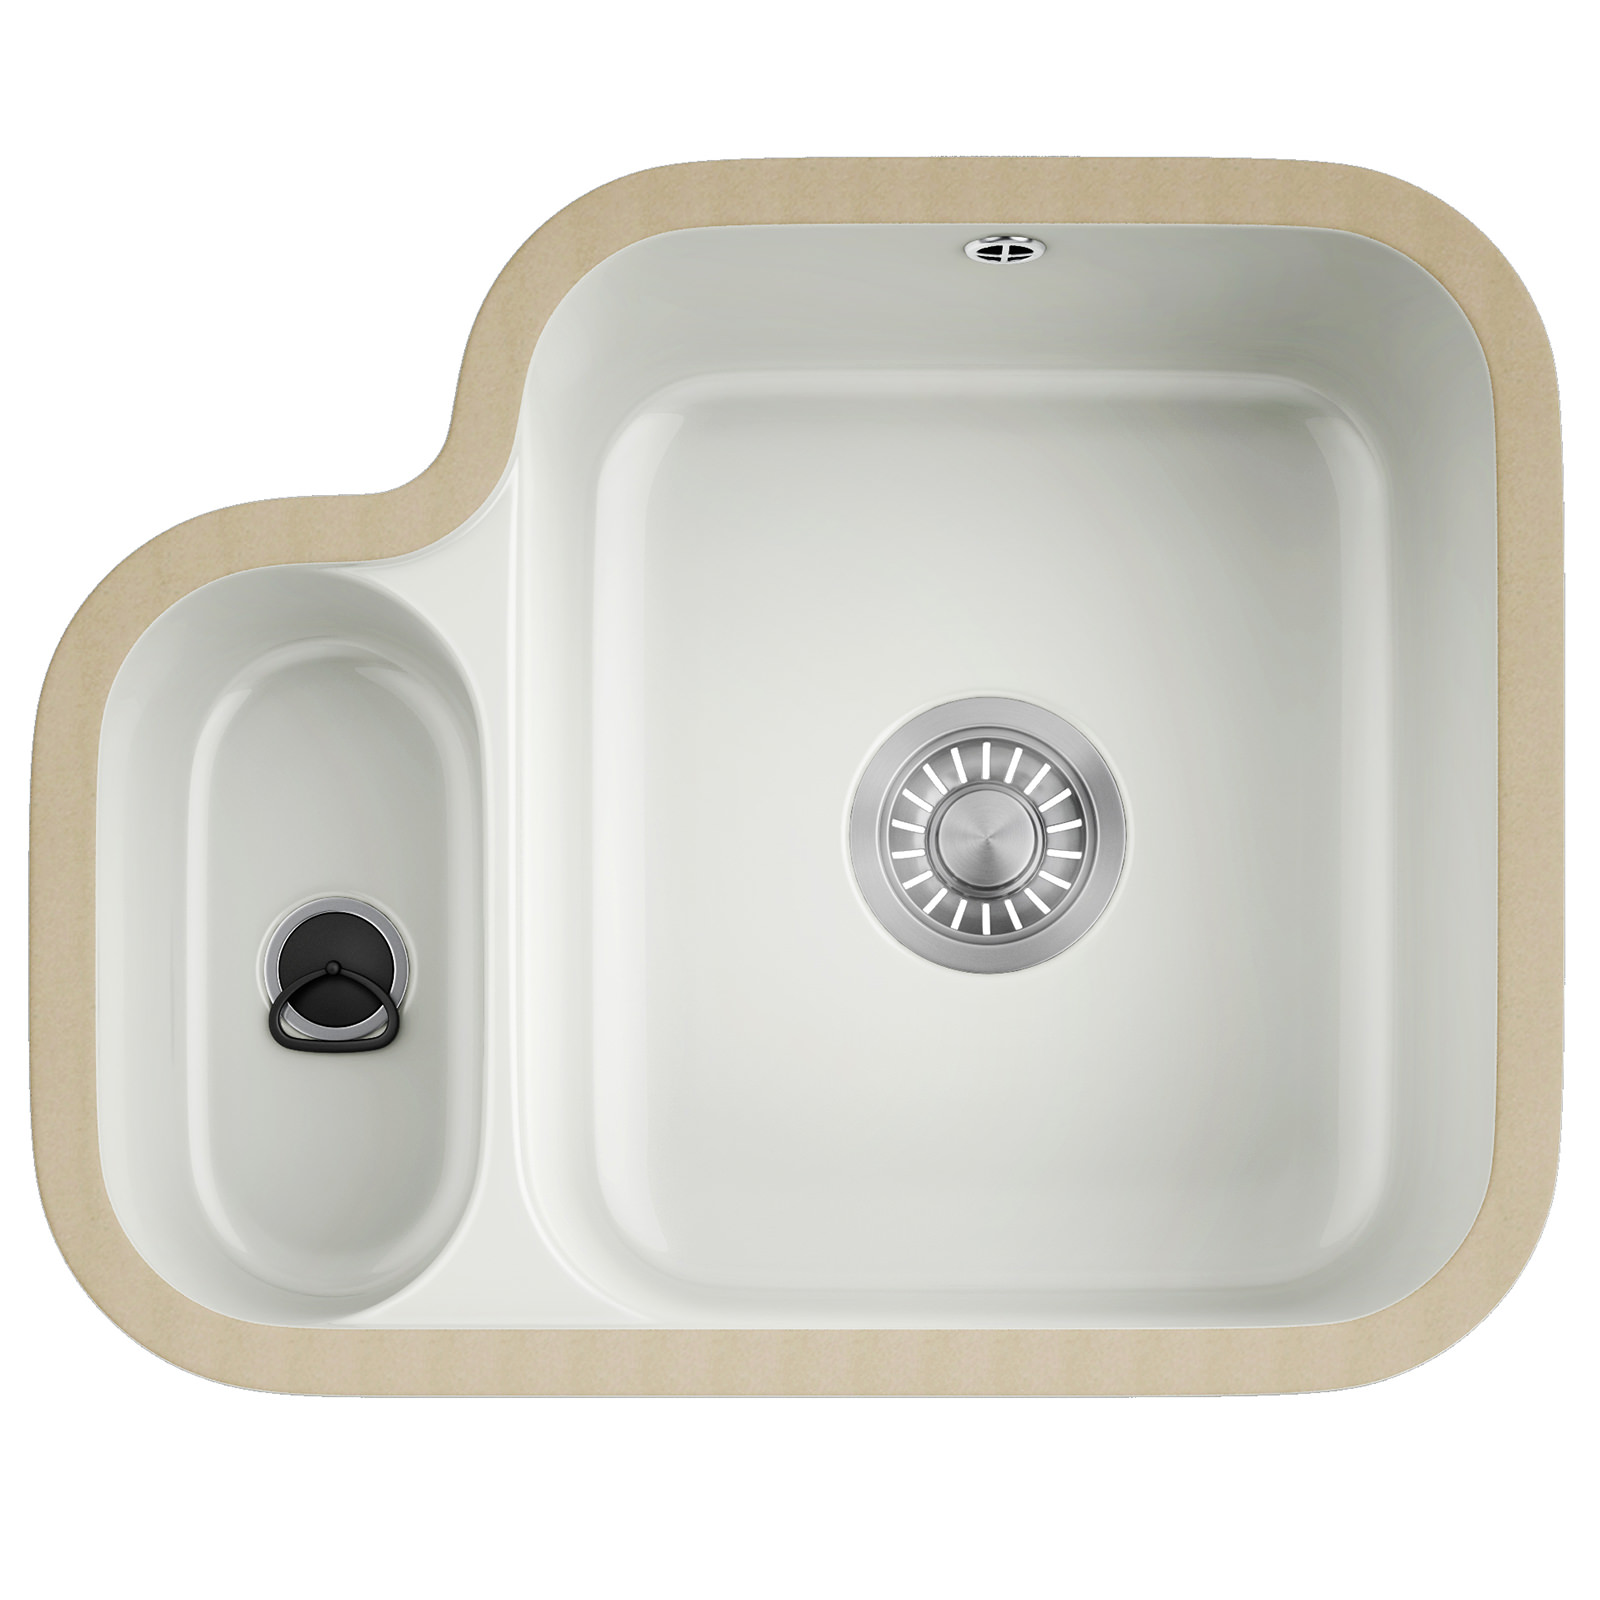 Franke v and b vbk 160 ceramic white 1 5 bowl undermount - Undermount ceramic kitchen sink ...